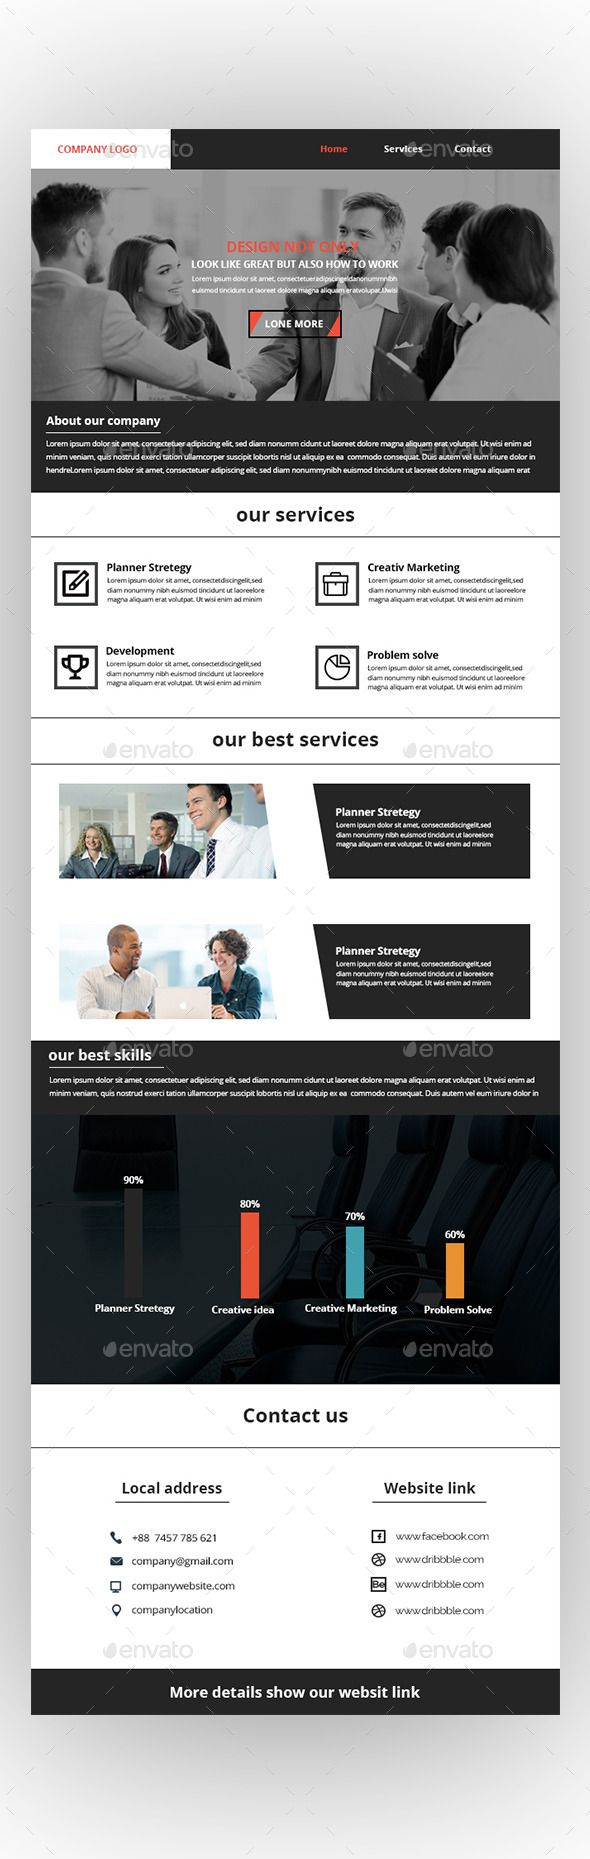 Corporate Email Newsletter Template | Newsletter templates, Email ...